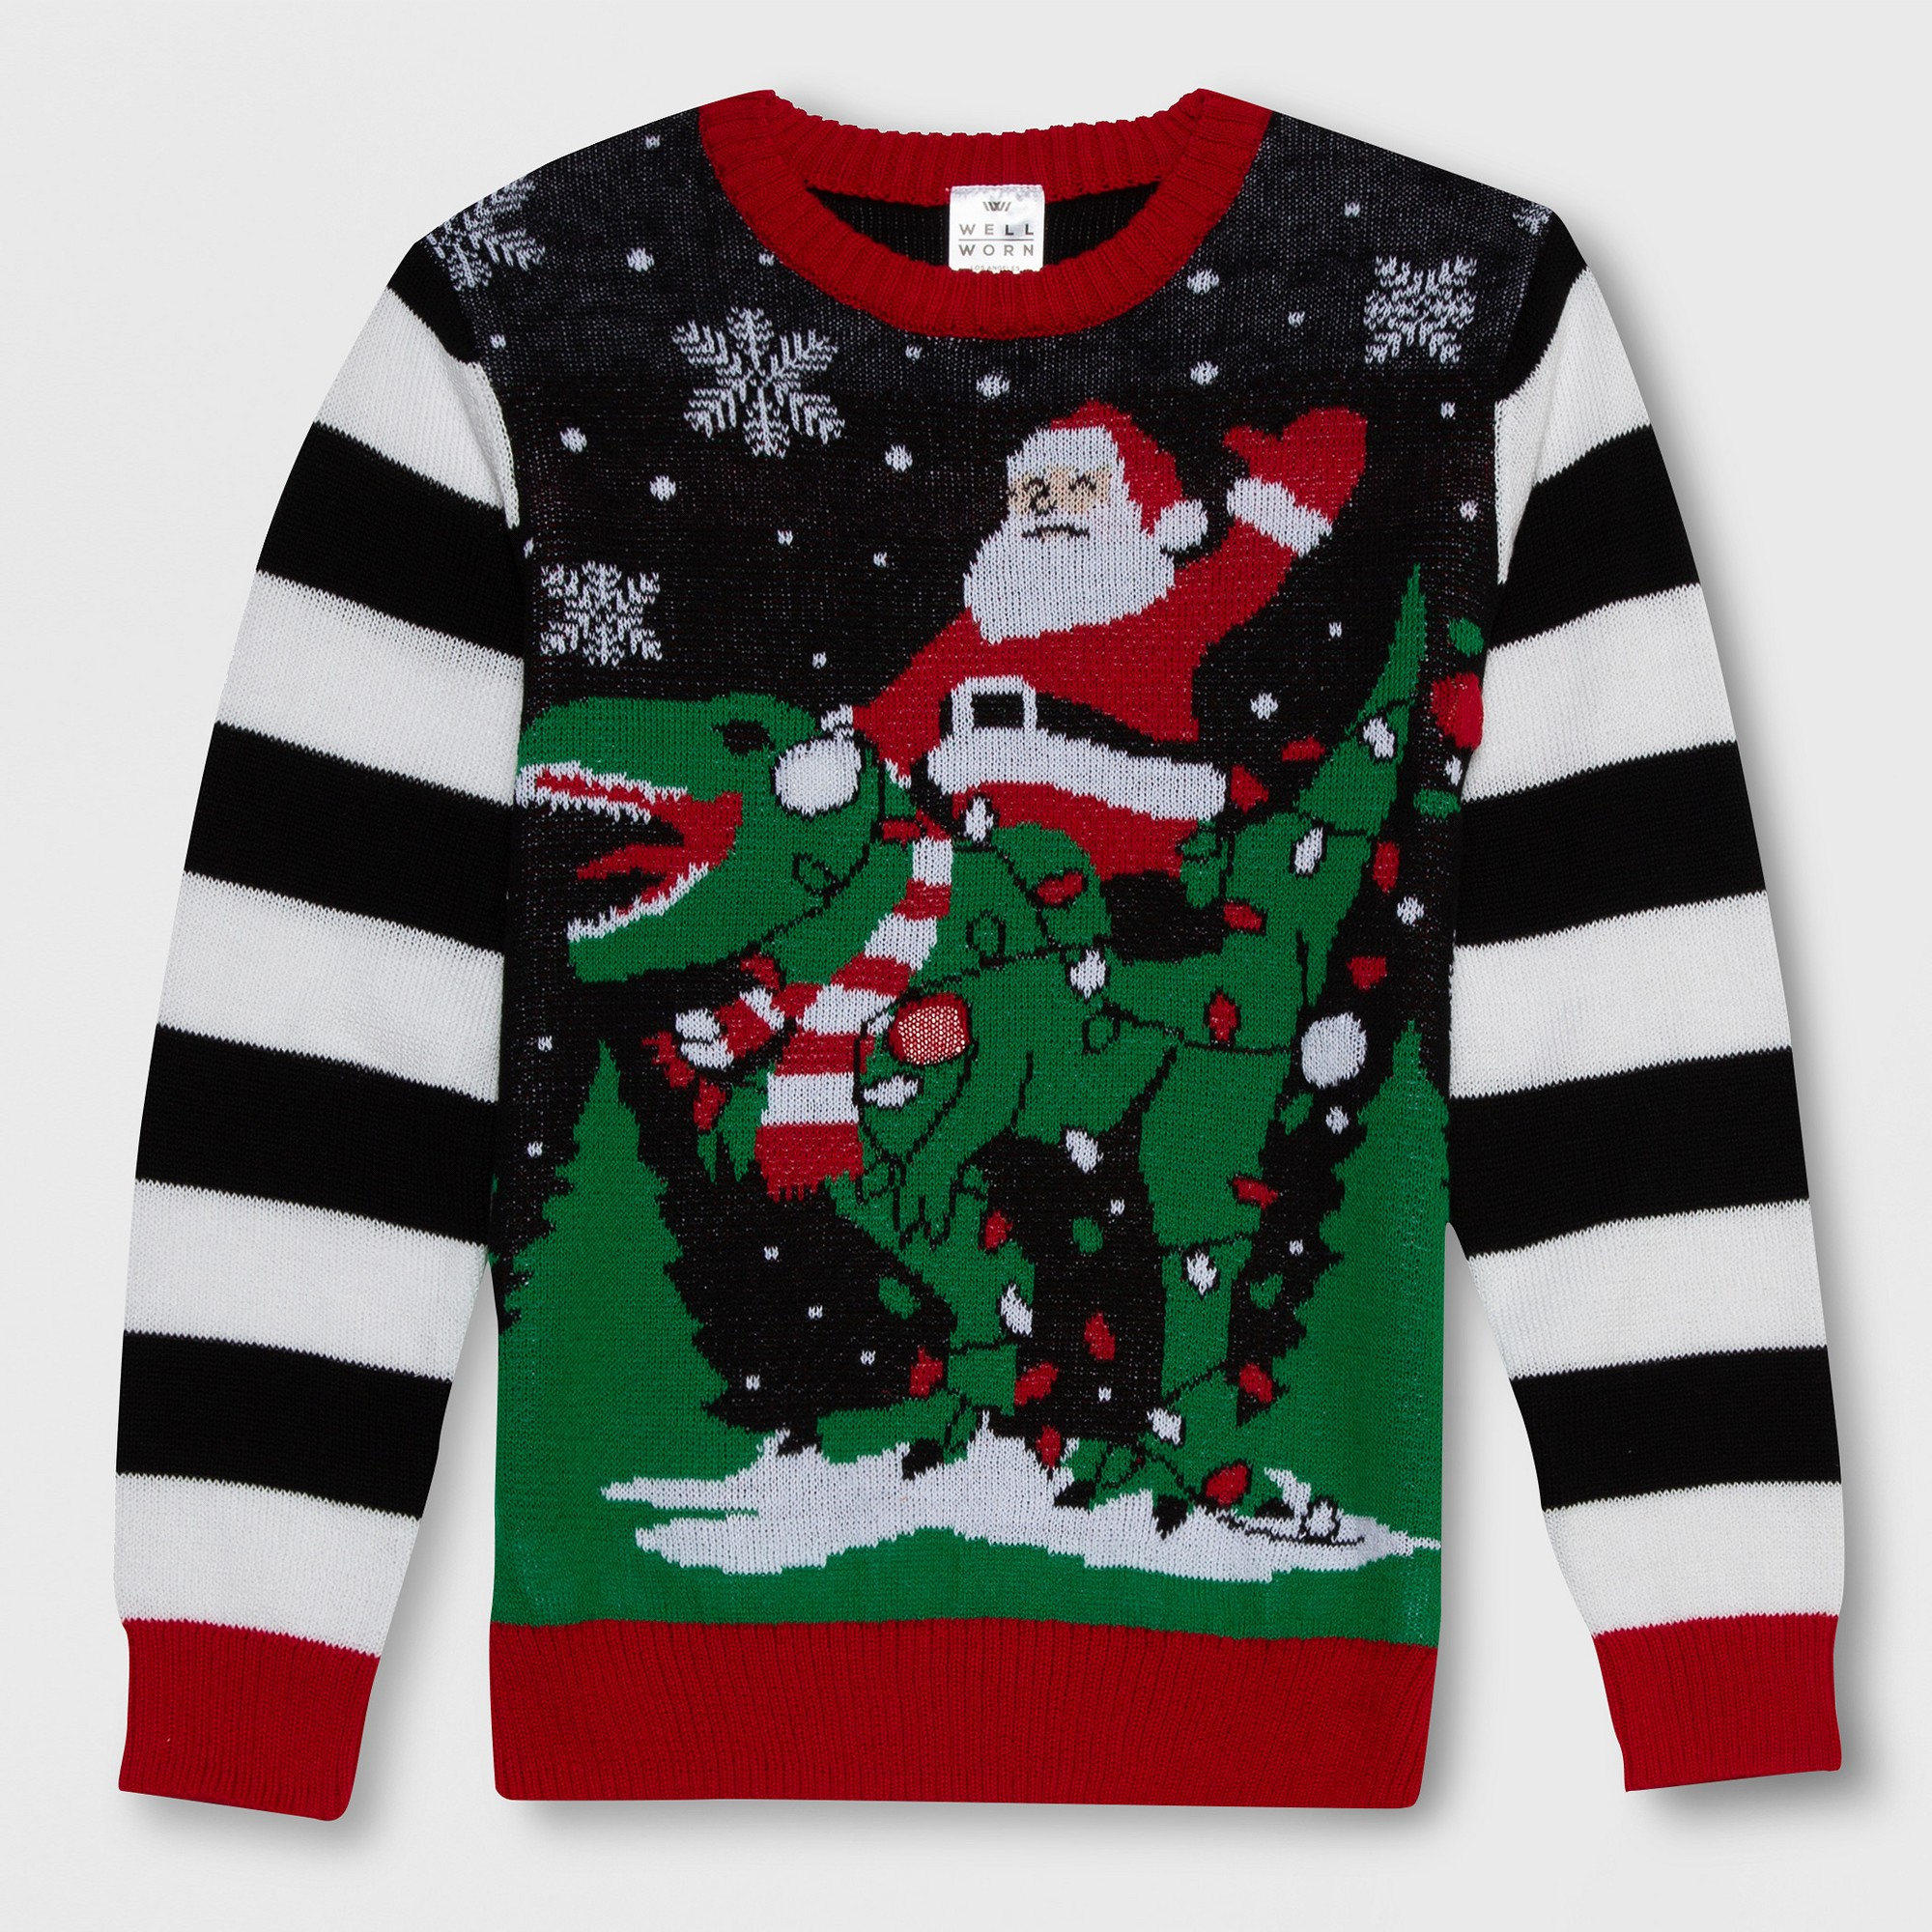 Kids Christmas Jumper Super Santa Girls Boys Unisex Knitted Jumpers 2 to 12 Year